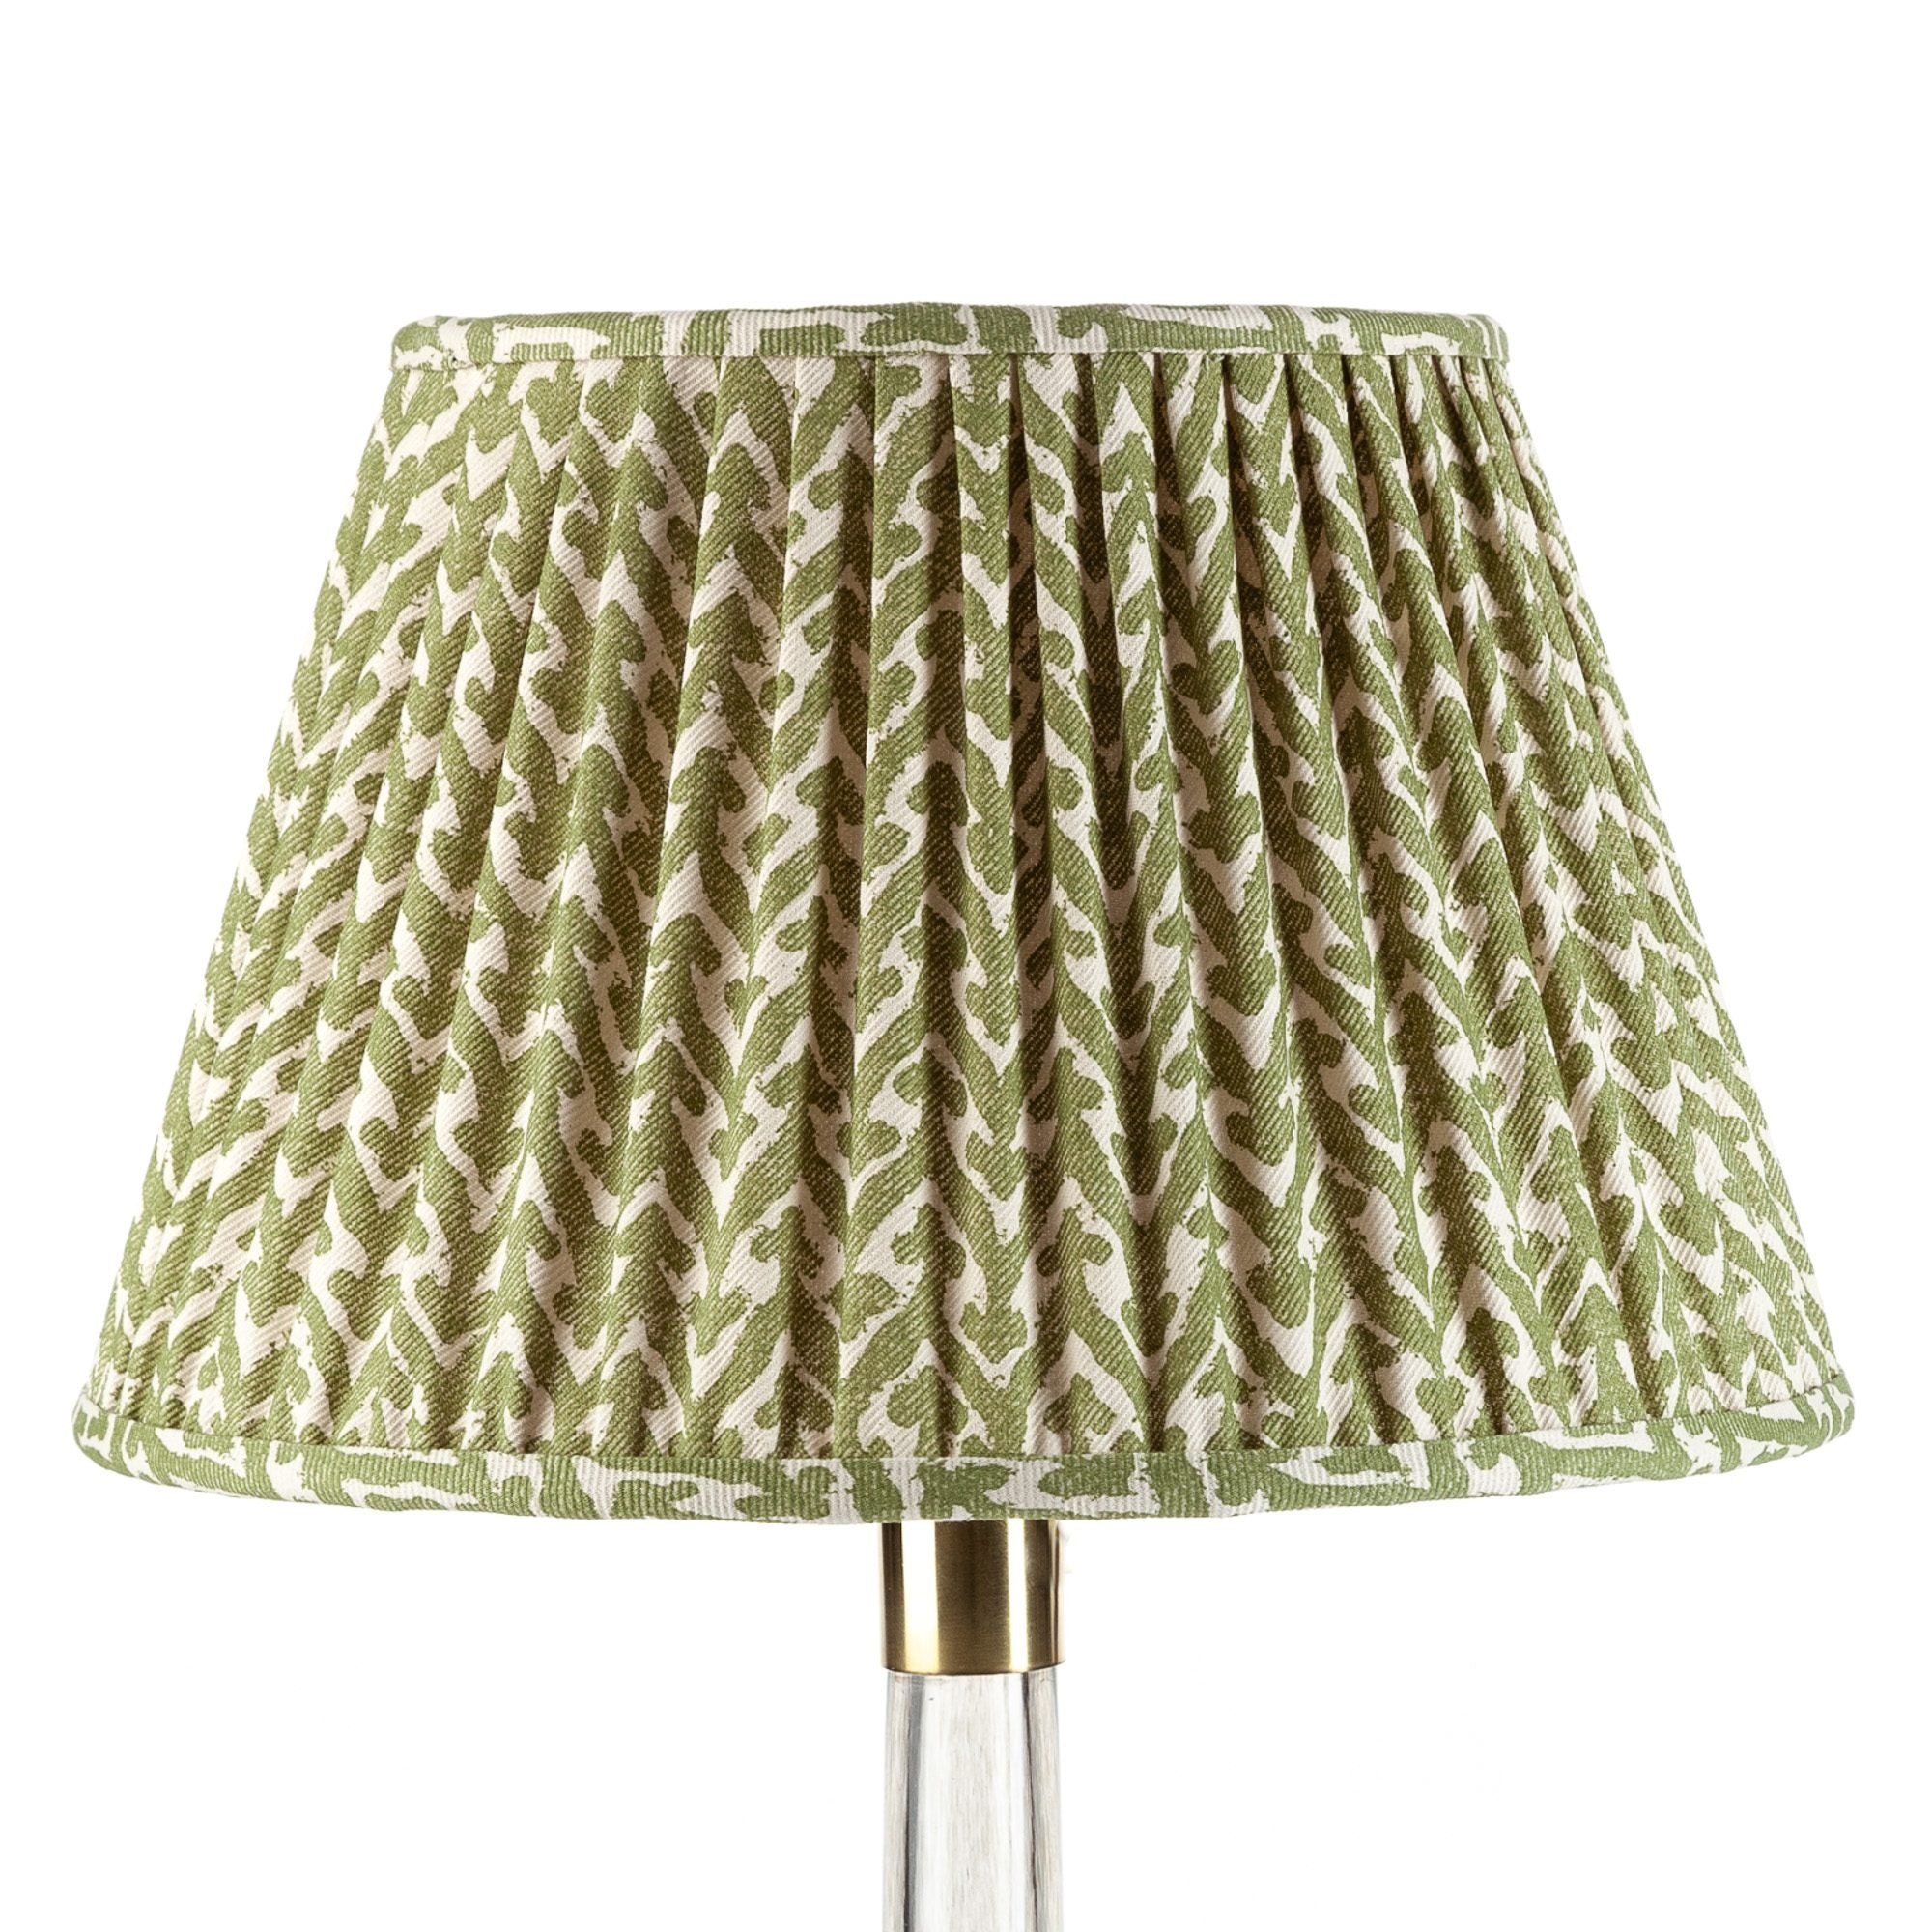 Fermoie Lampshade in Green Rabanna